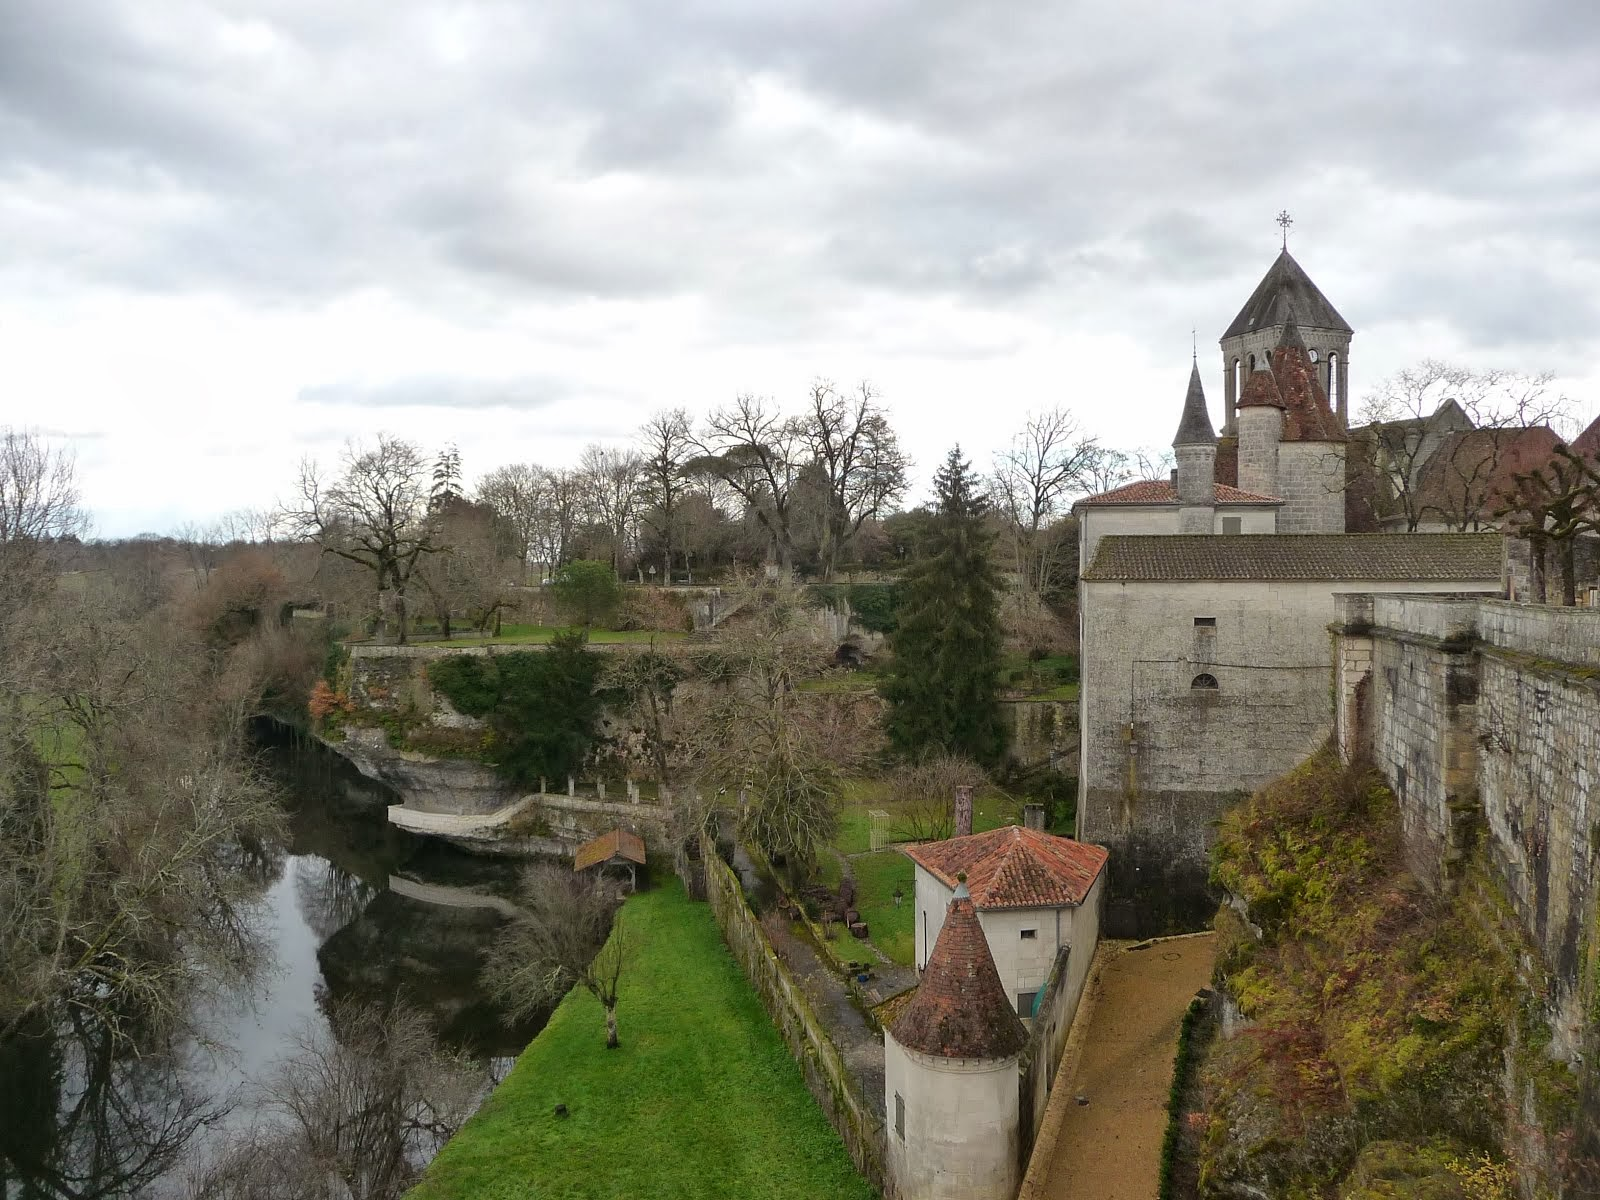 River Dronne seen from the battlements of Bourdielles Castle